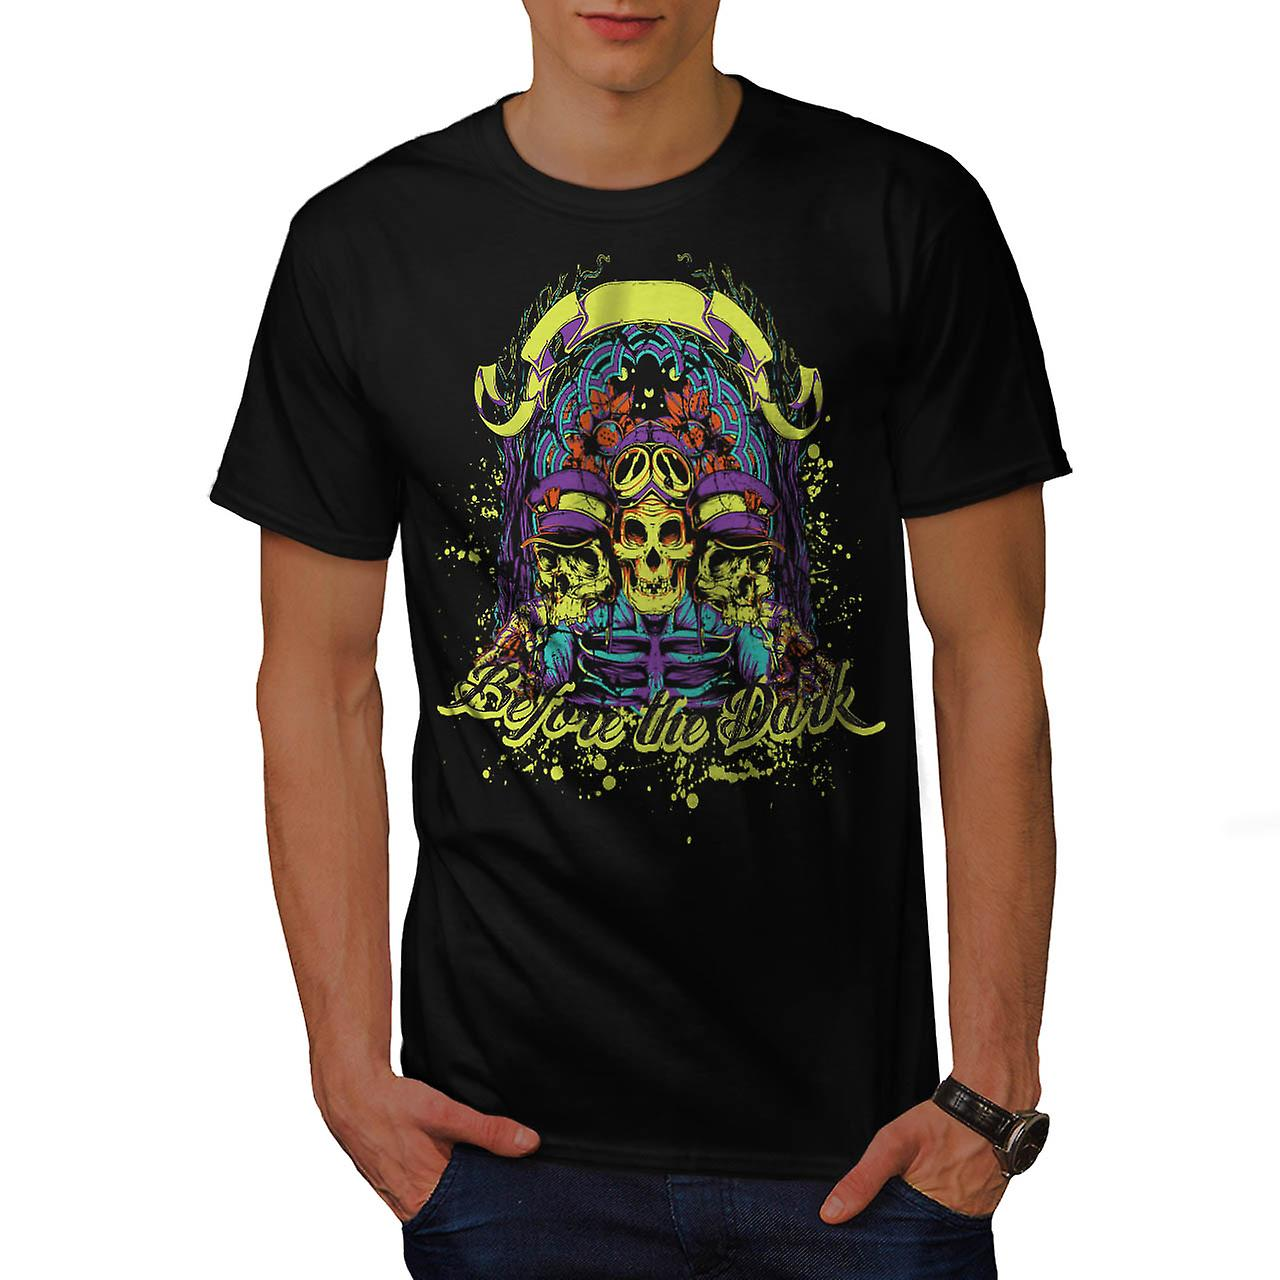 Prima t-shirt nero scuro Zombie teschio Ride uomini | Wellcoda